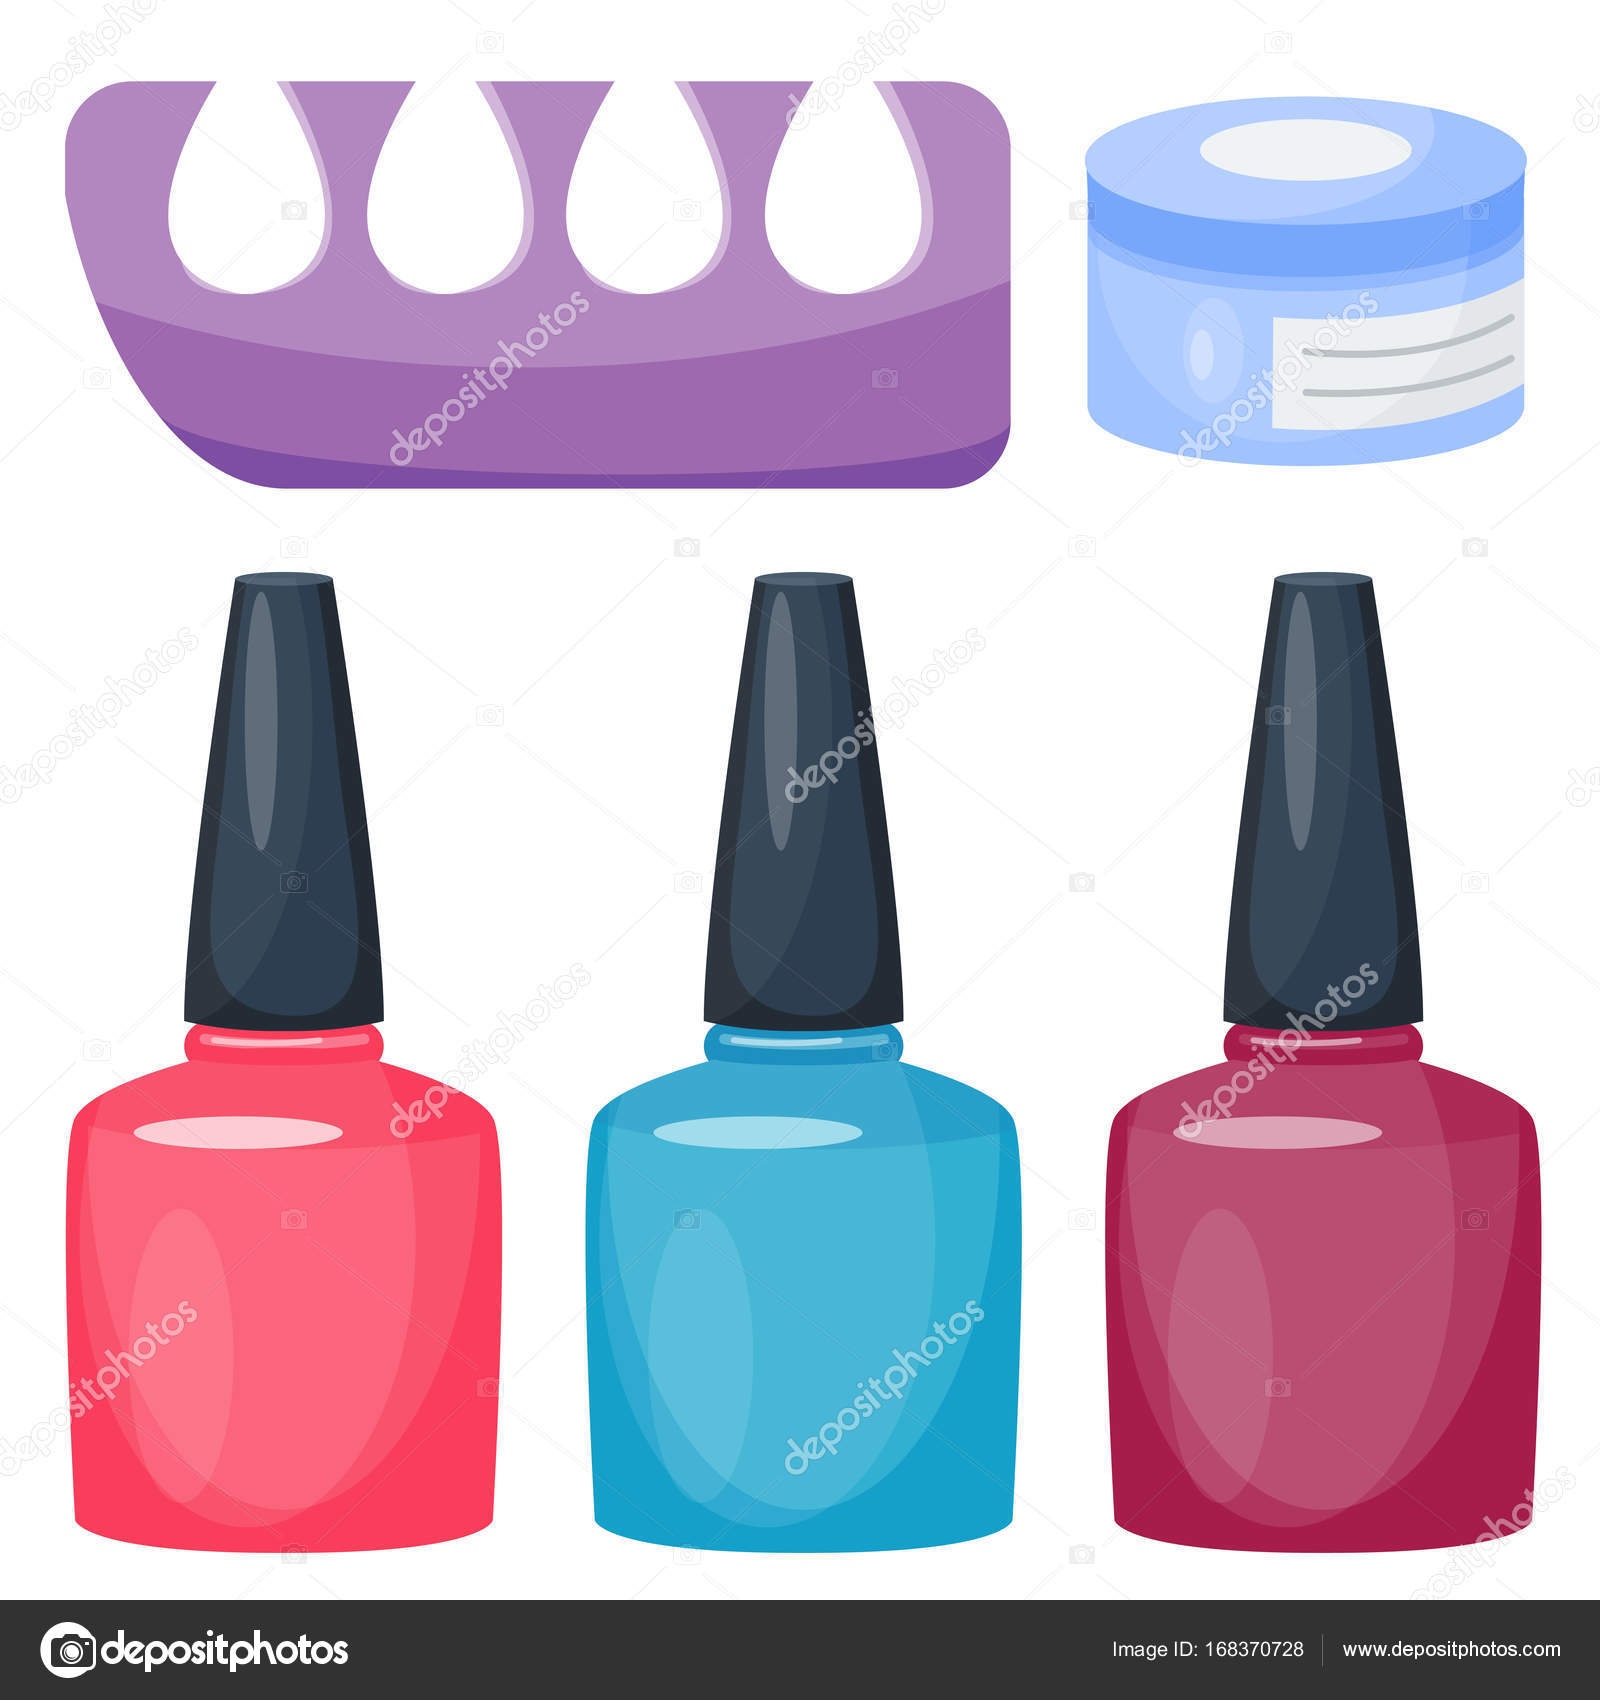 Manicure foot and hand care fingers instruments vector fashion ...